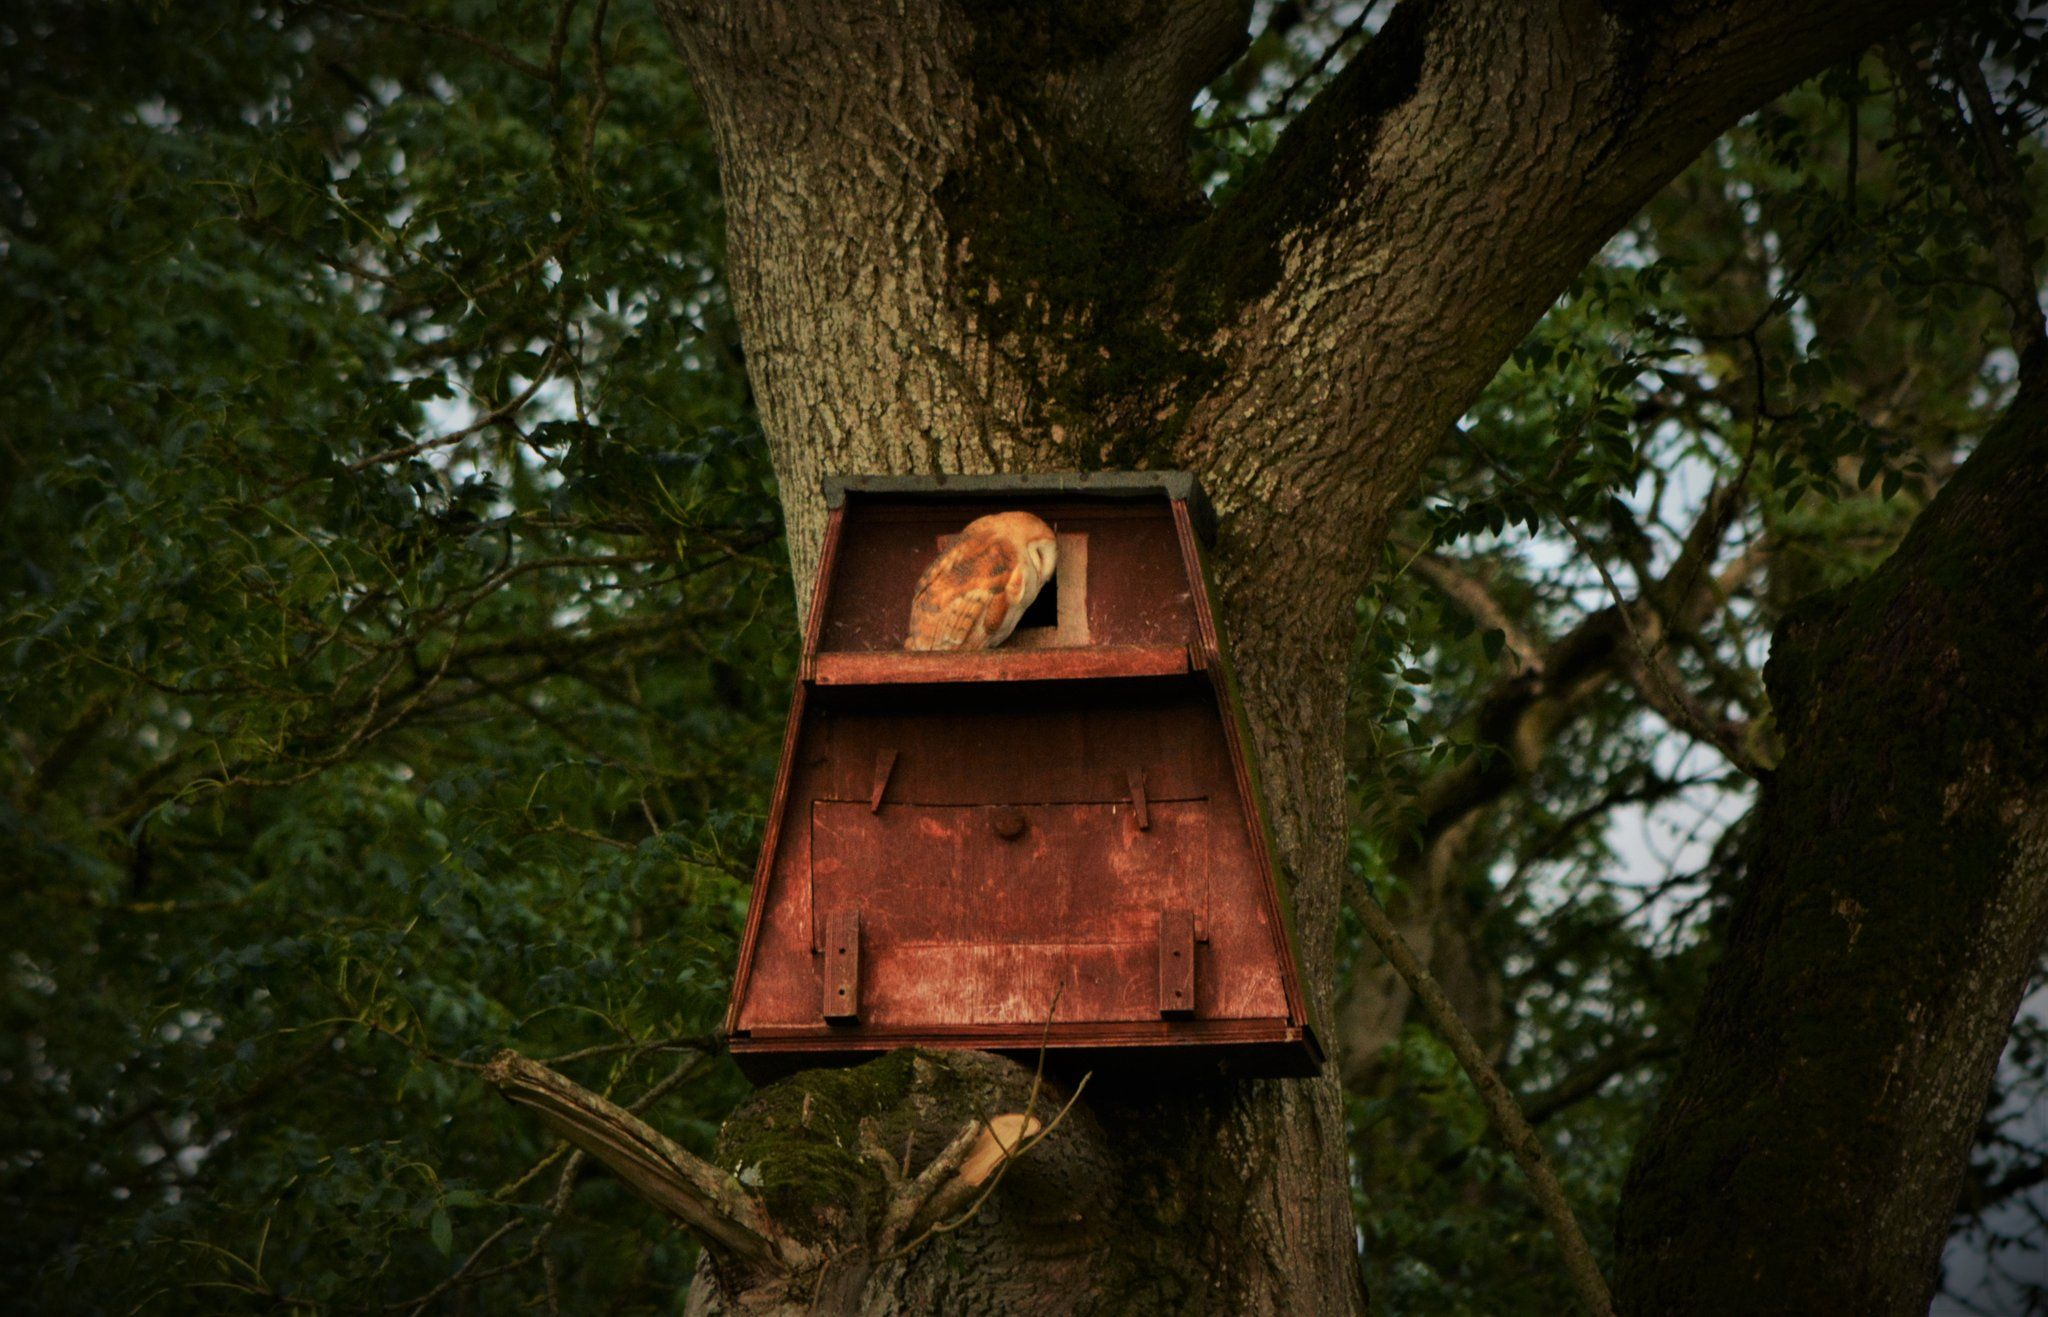 FIRST FLIGHT: The barn owl chick